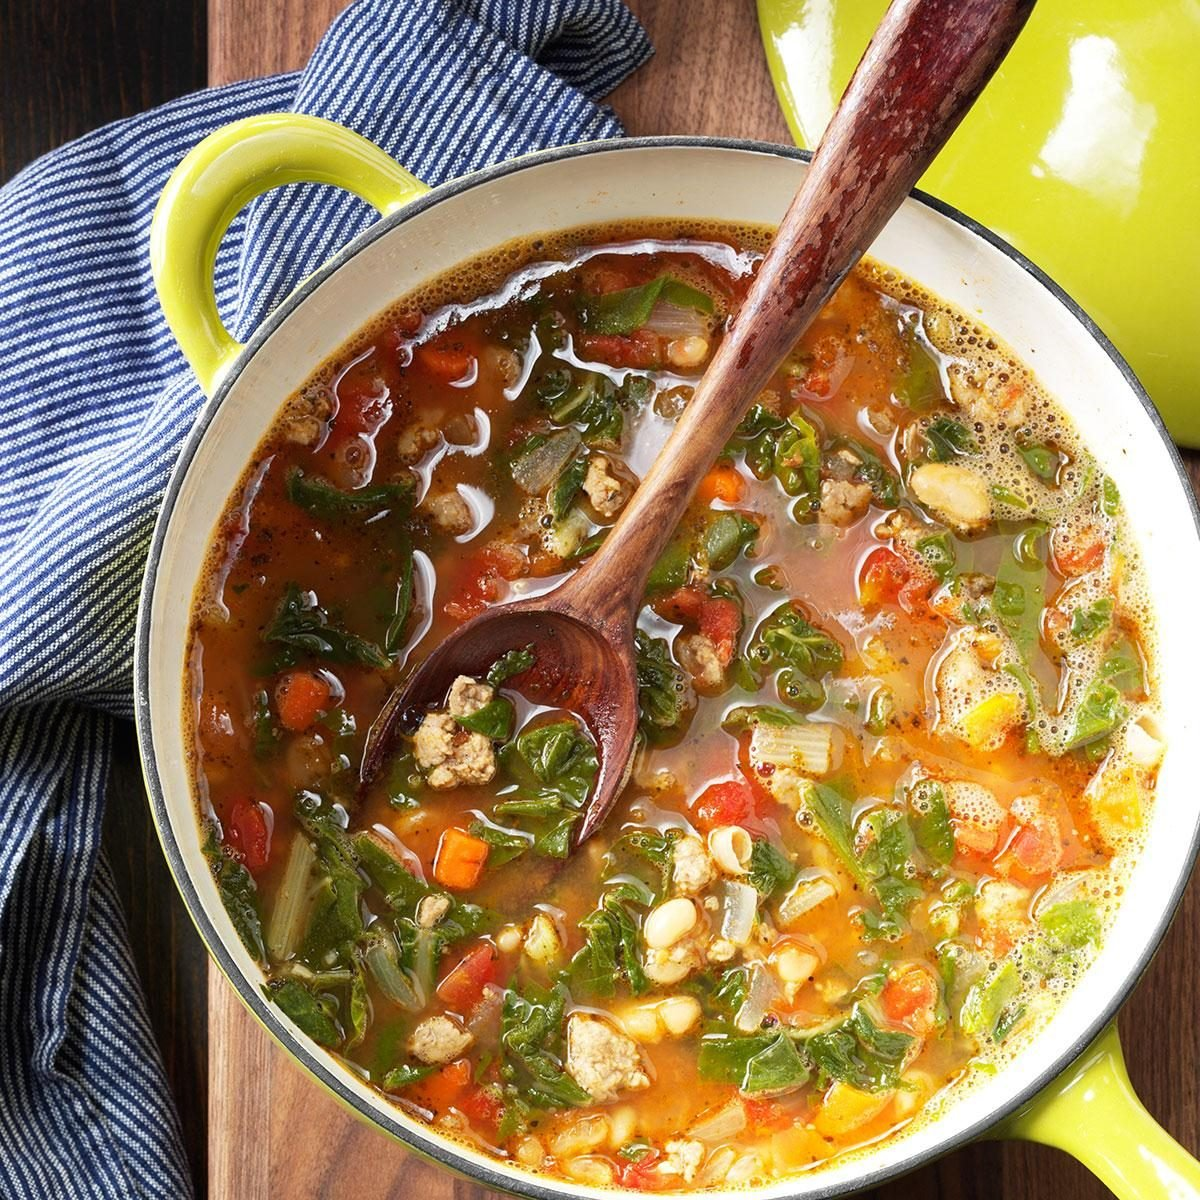 Sausage & Greens Soup